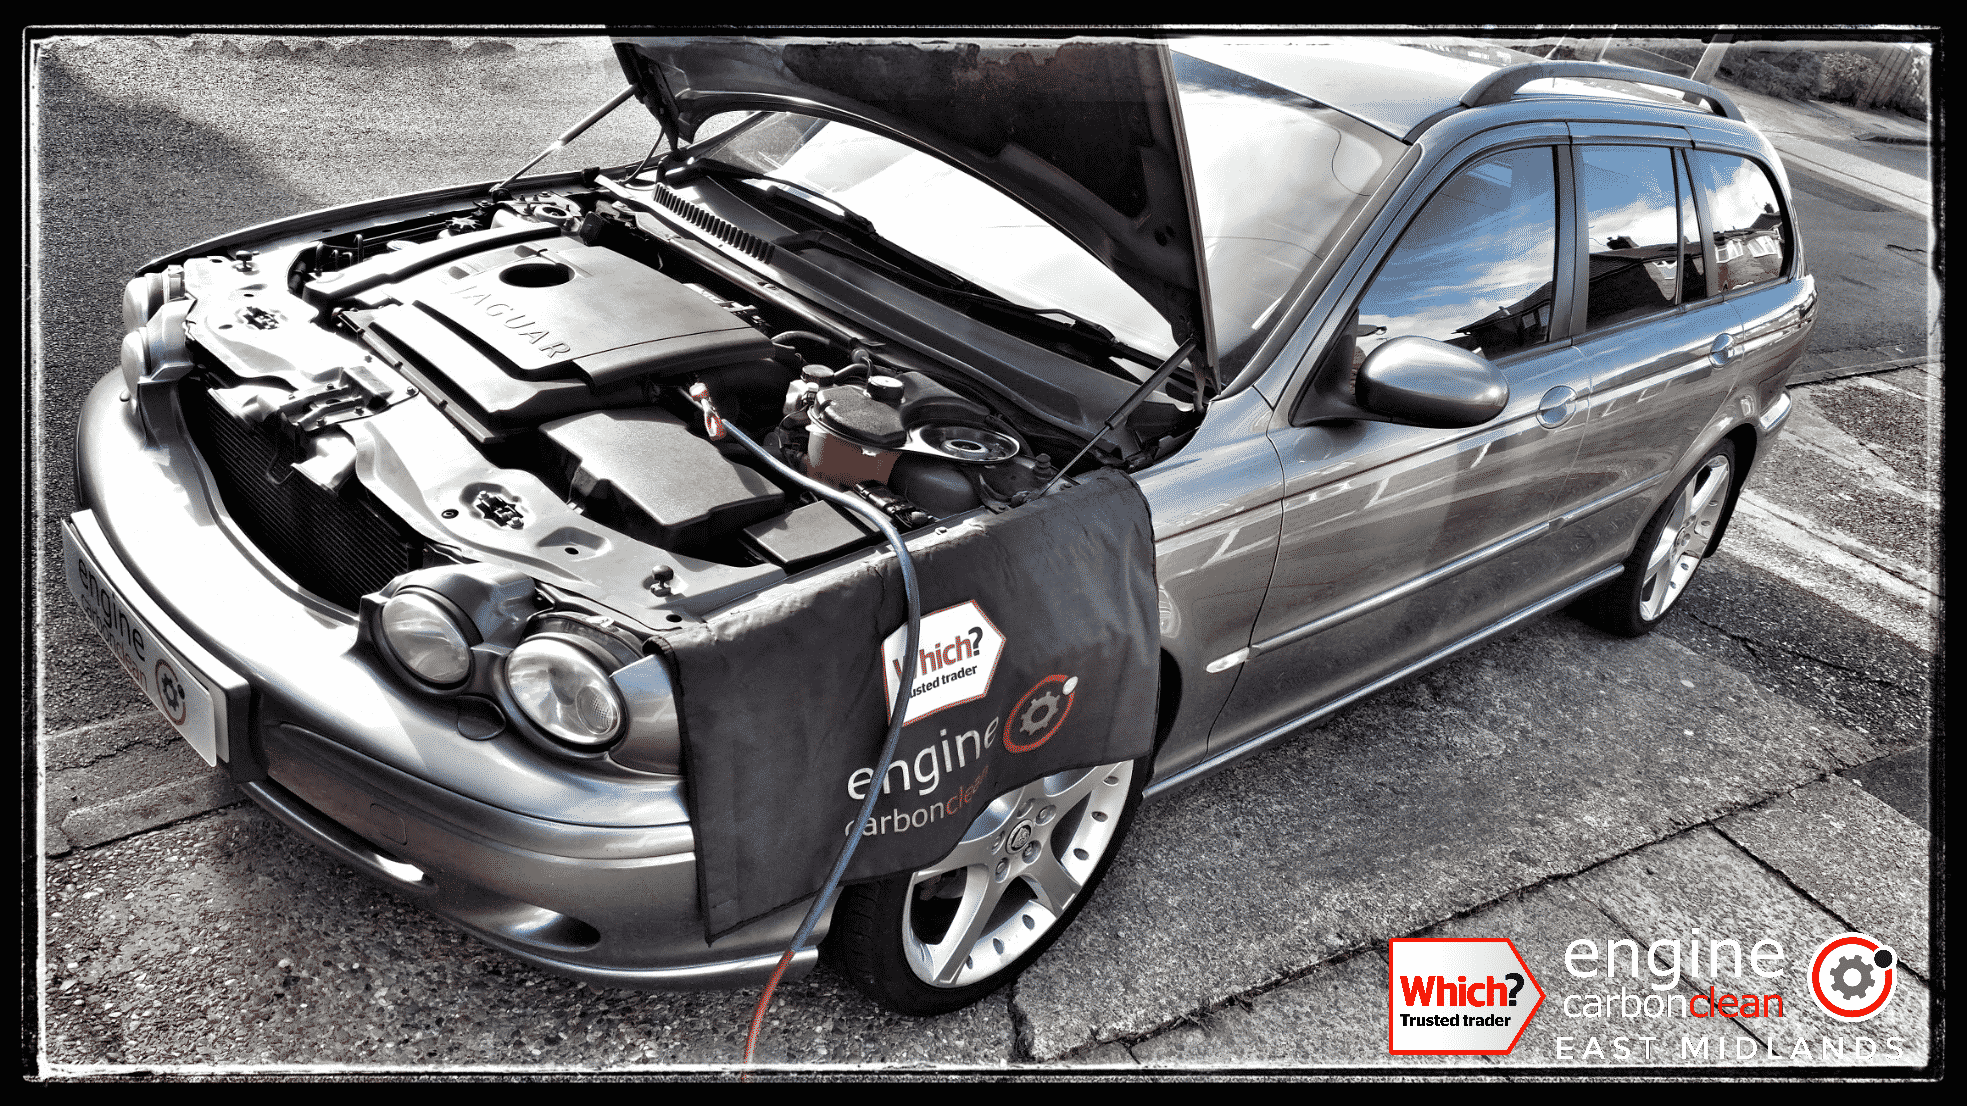 Engine Carbon Clean on a Jaguar X-Type 2.2 diesel (2006 - 200,683 miles)